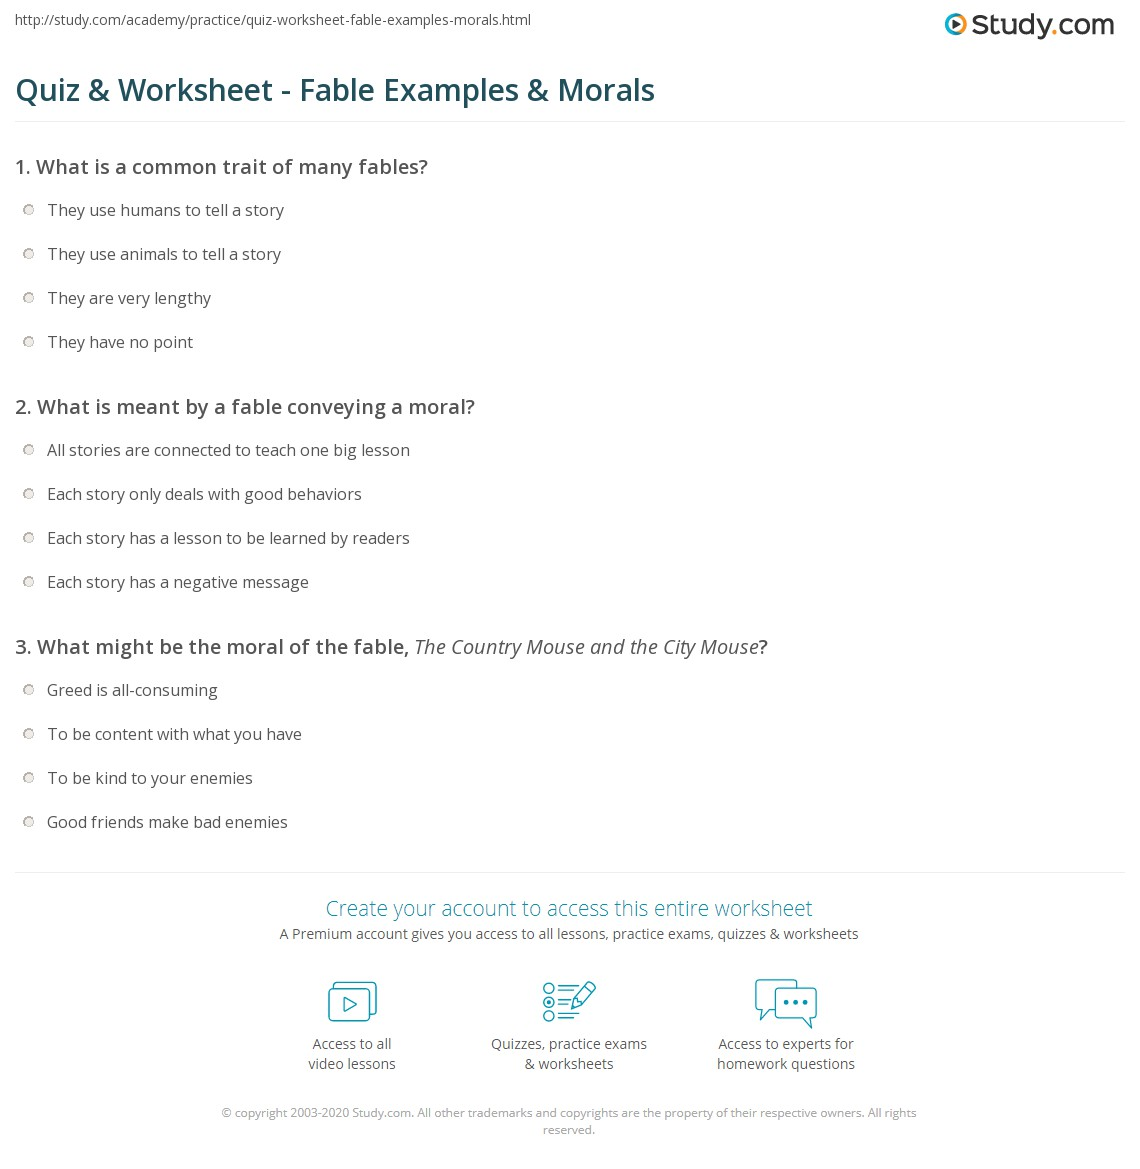 Quiz Worksheet Fable Examples Morals Study